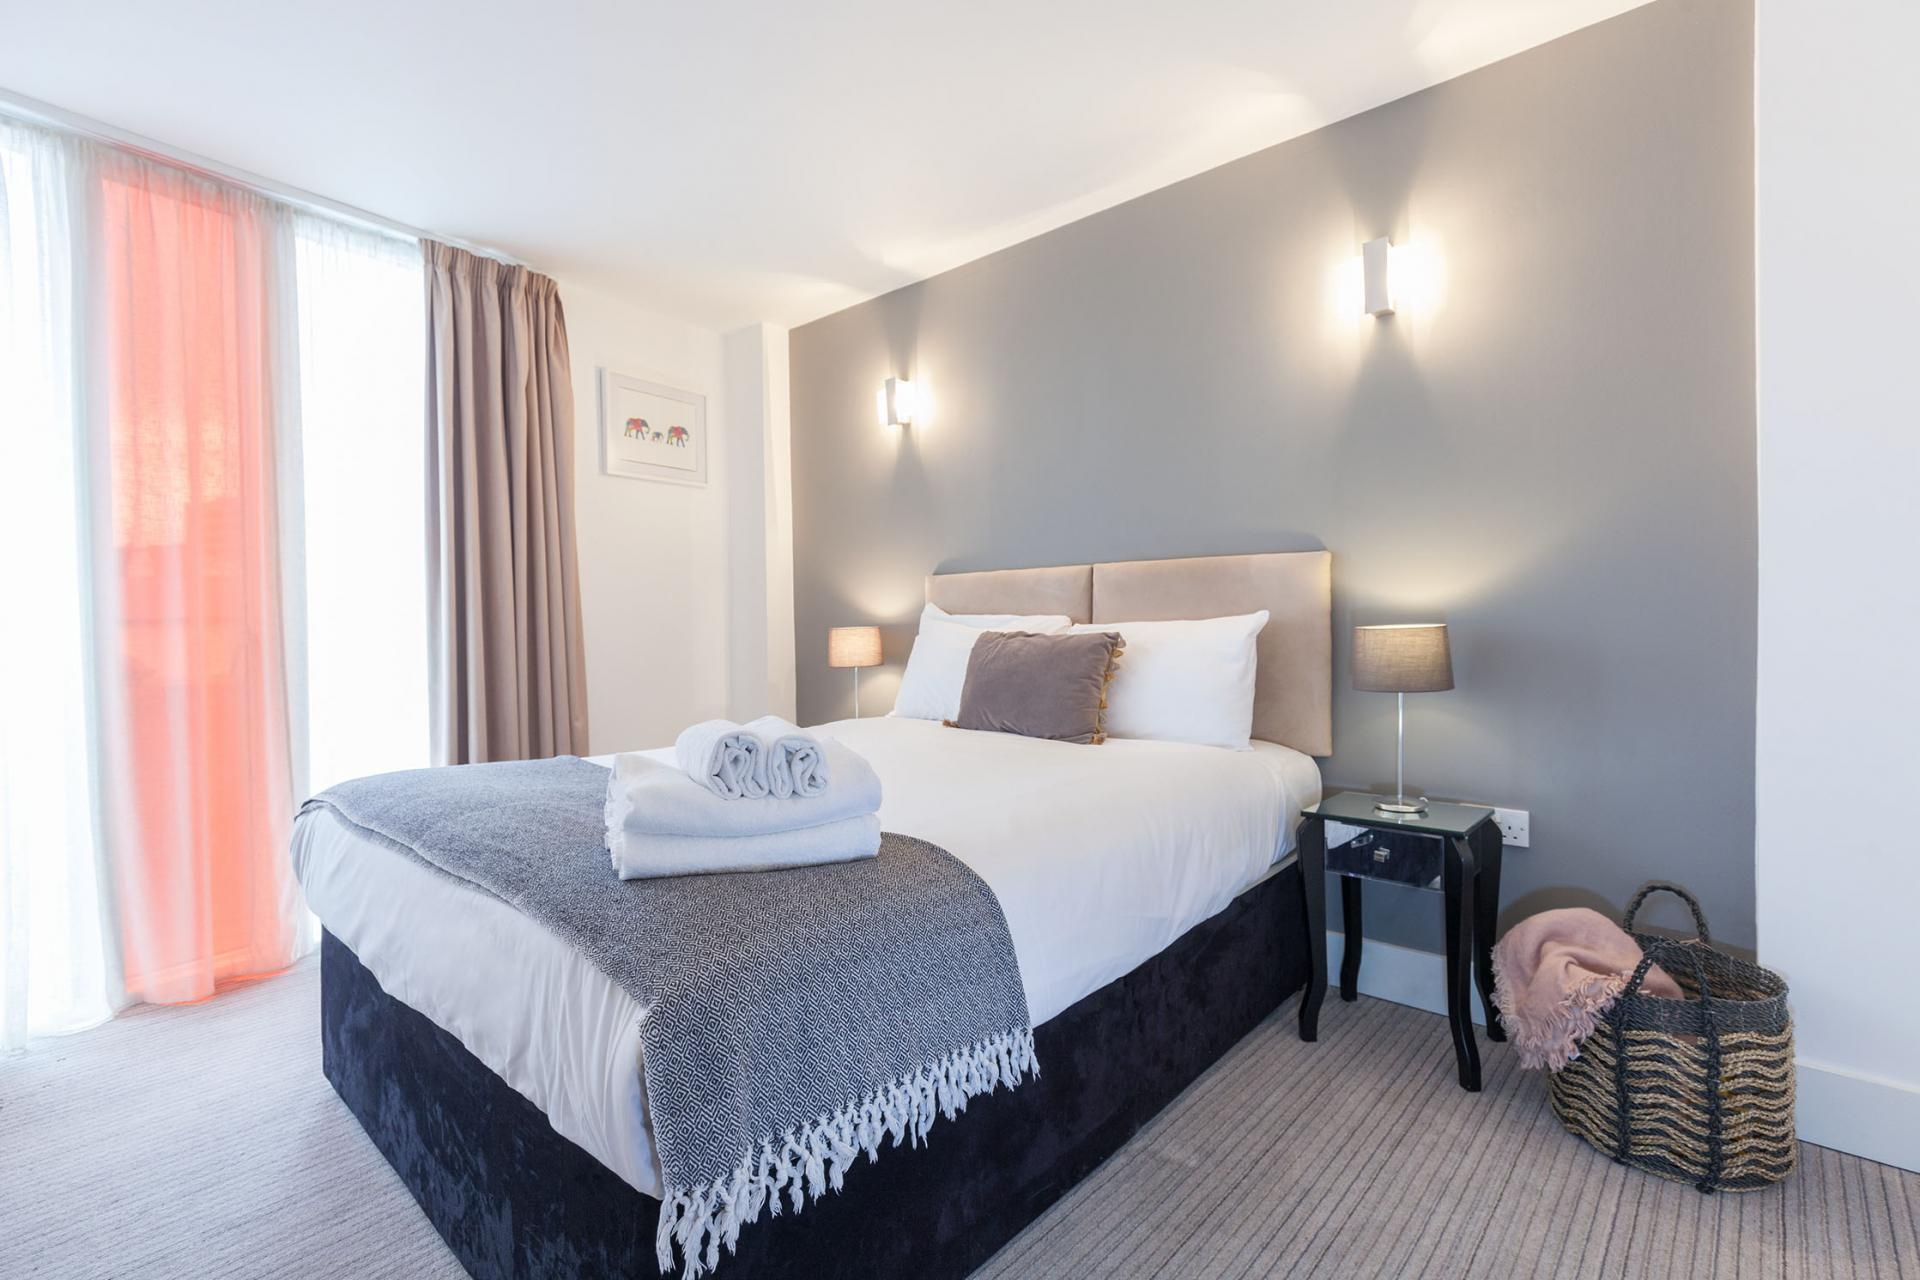 Guest bedroom at Sinclair Apartments, Centre, Sheffield